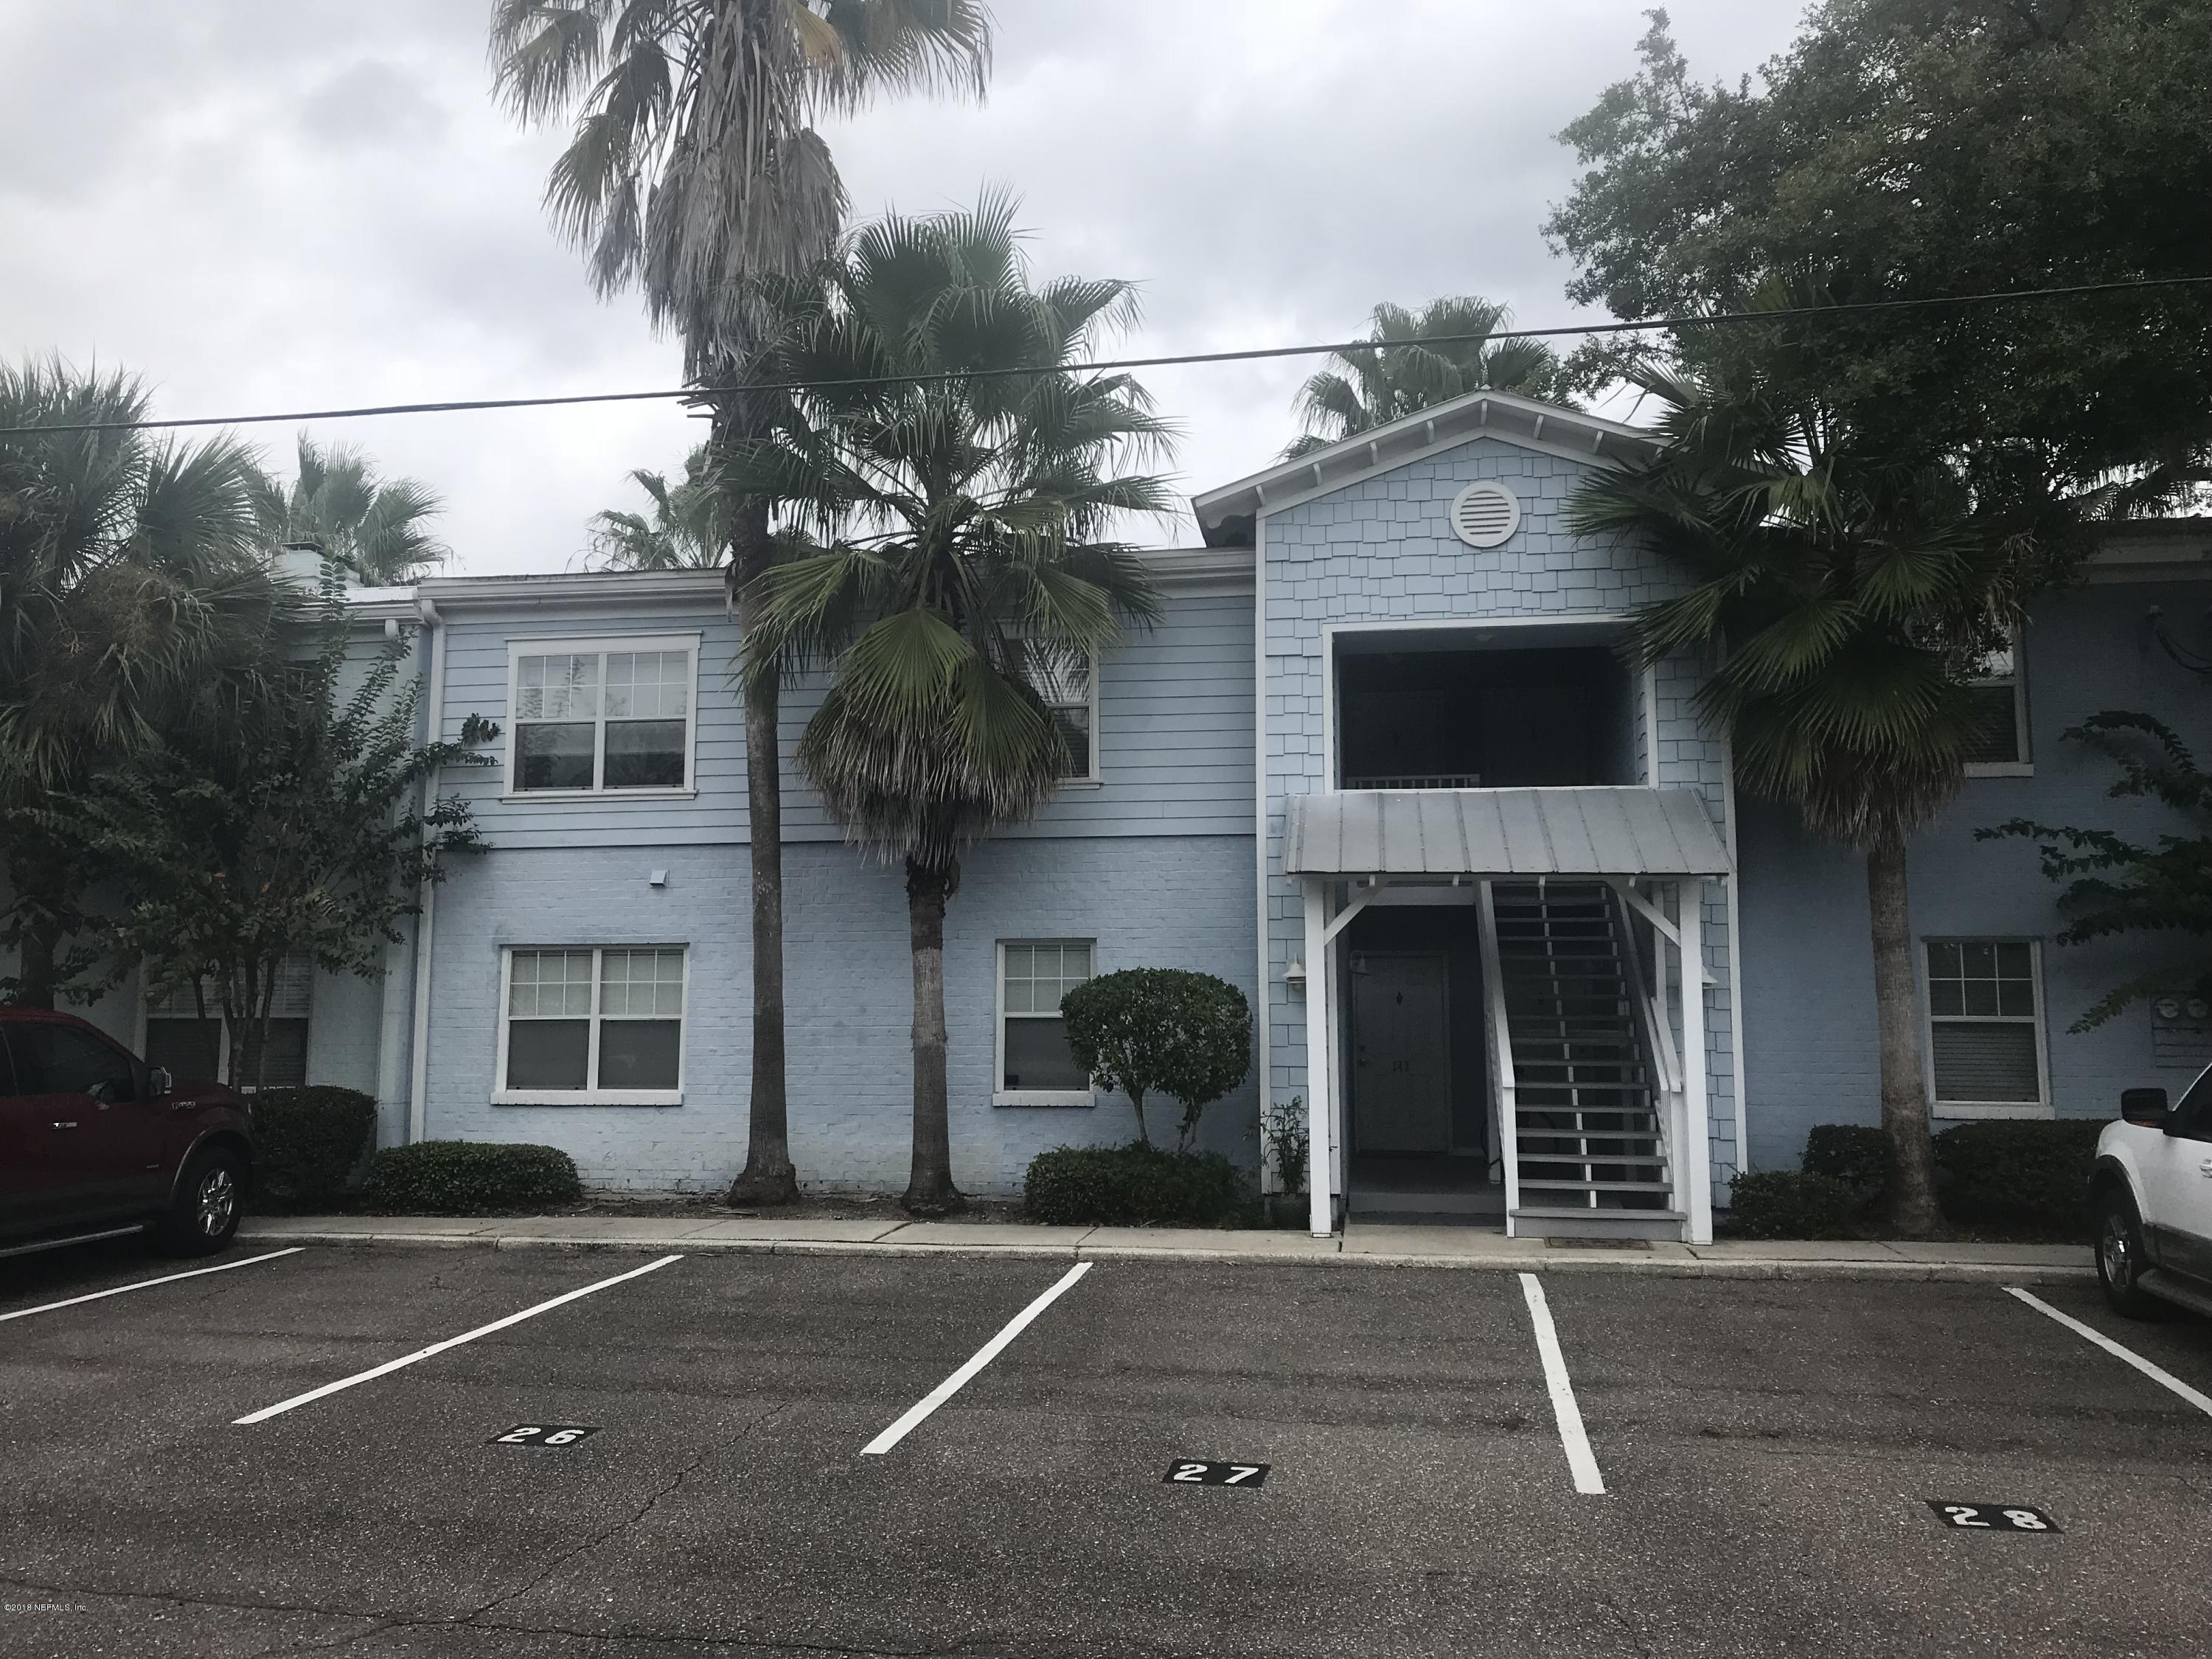 3434 BLANDING, JACKSONVILLE, FLORIDA 32210, 2 Bedrooms Bedrooms, ,2 BathroomsBathrooms,Residential - condos/townhomes,For sale,BLANDING,965522